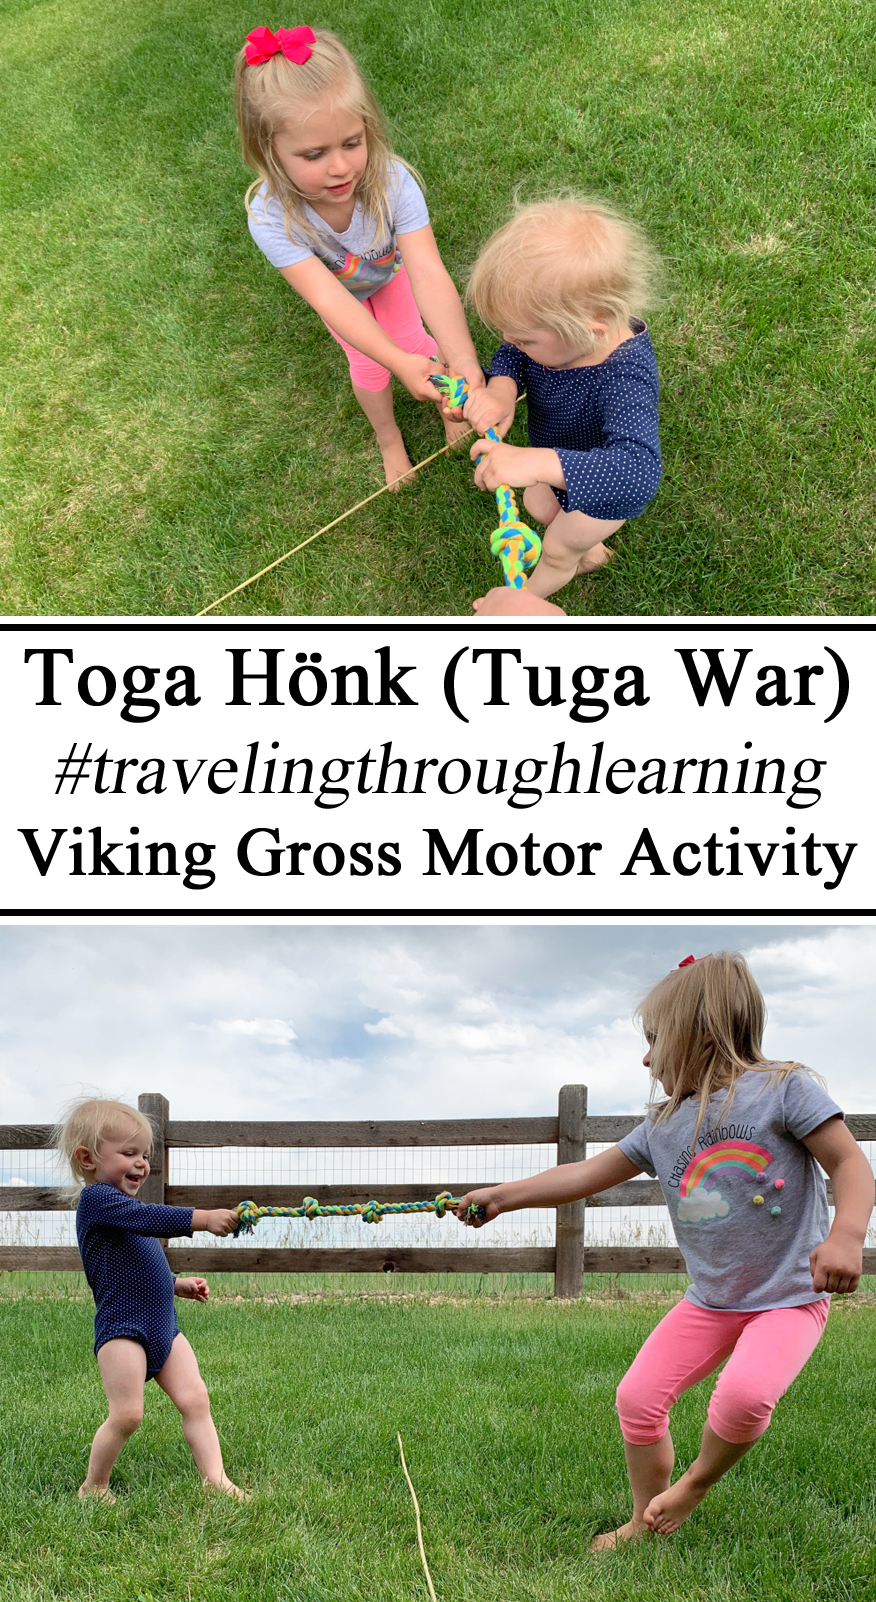 Gross Motor Skills, Tuga War Iceland Viking Unit Activities Hands on Learning Unit Studies Summer Toddler Preschool PreK Kindergarten #travelingthroughlearning Montessori Muscles Skills Skill Homeschool, Homeschooling